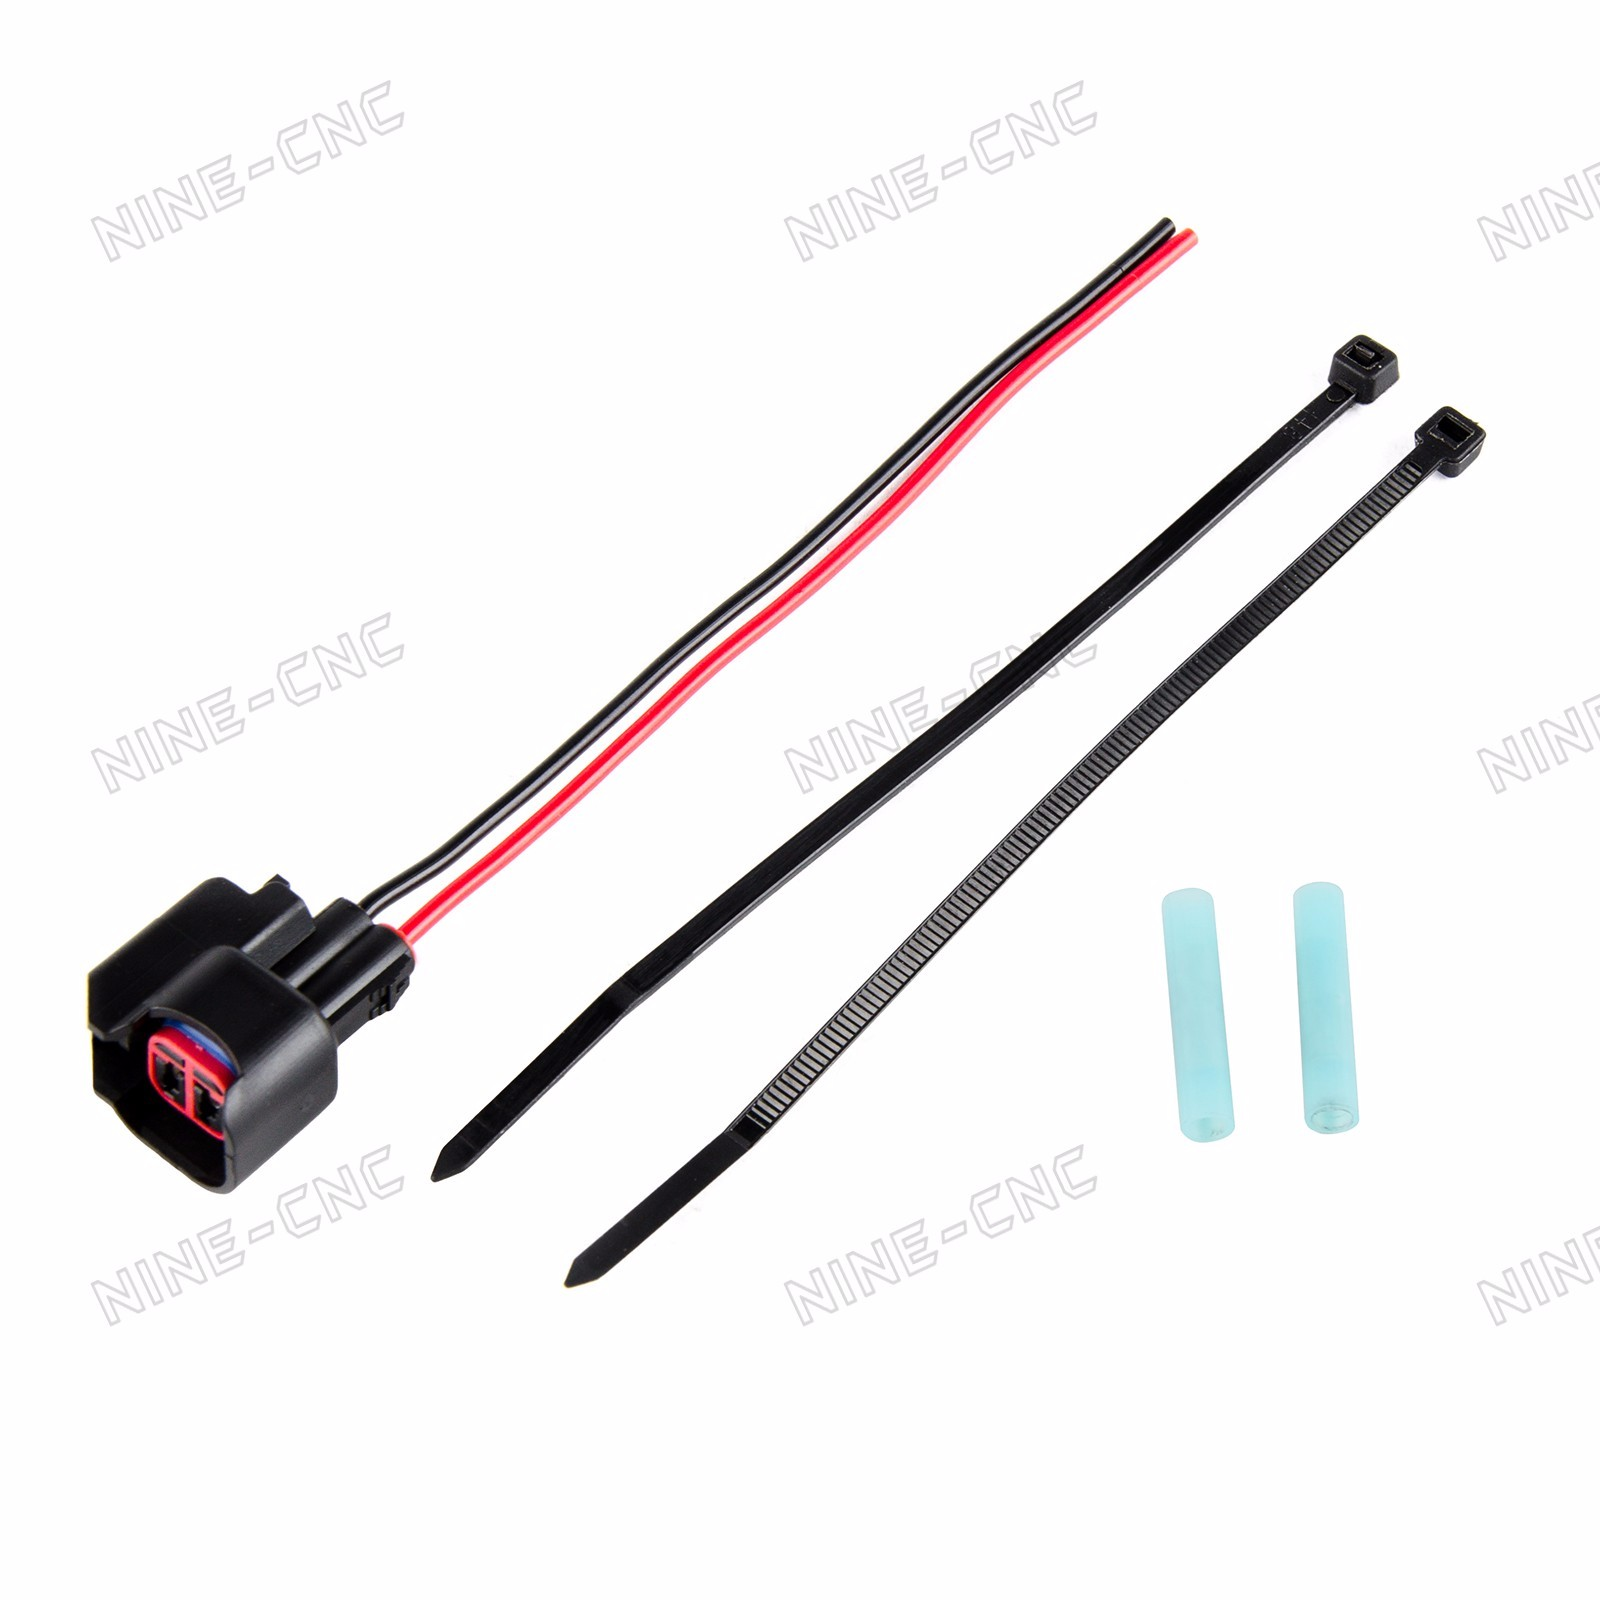 Details about Fuel Injector Pigtail Harness Repair Kit For Polaris Ranger  800 RZR 570 800